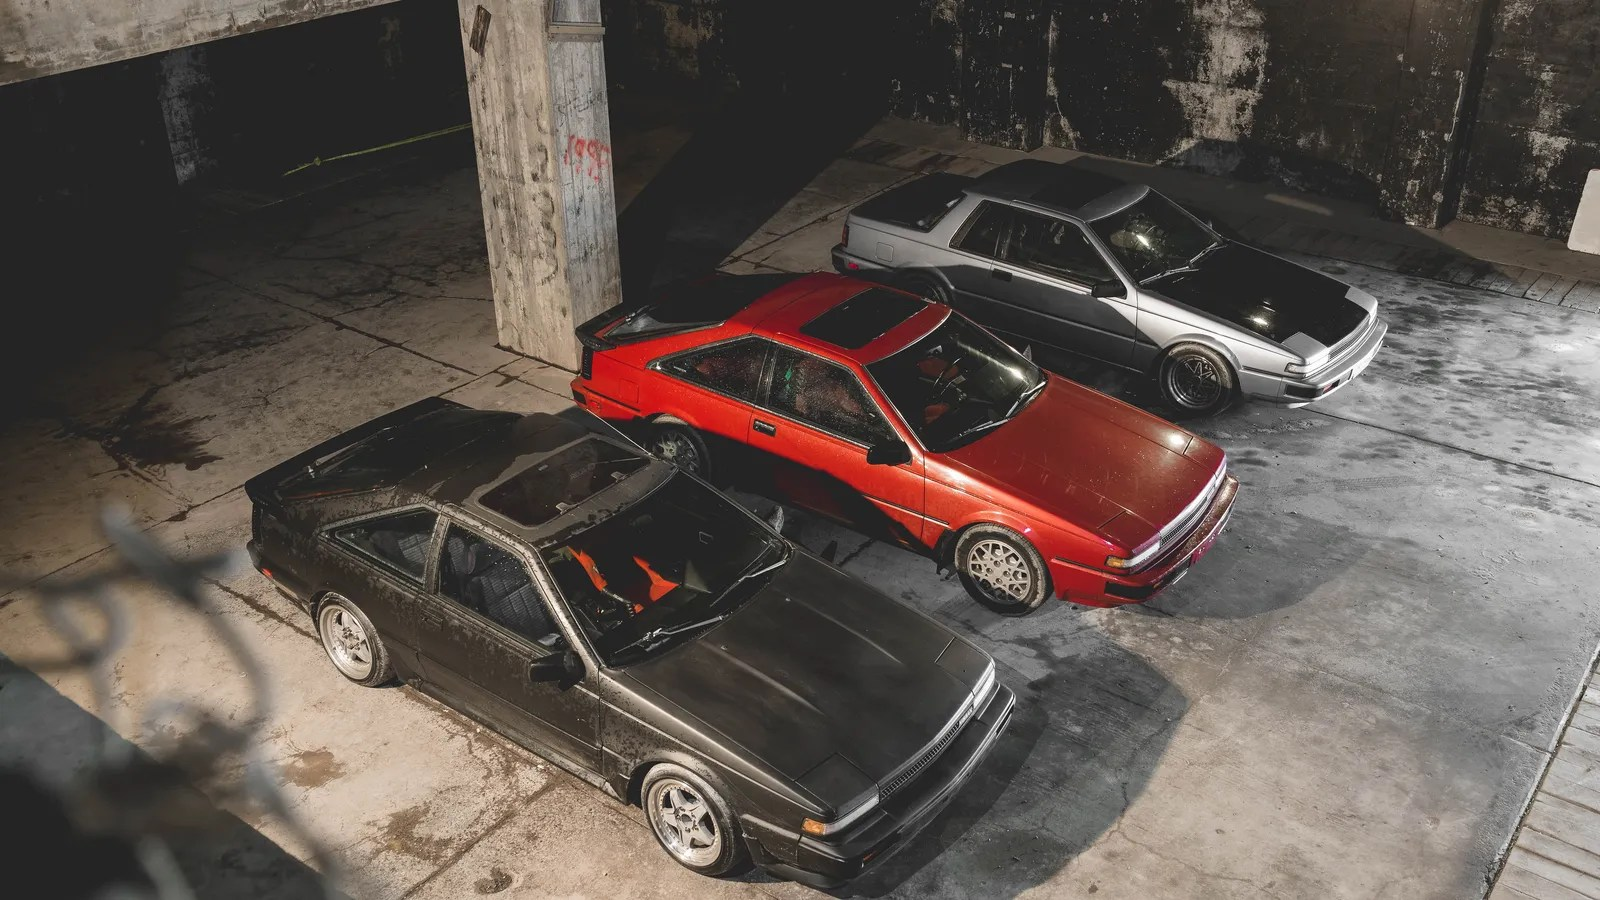 hight resolution of meet the die hard enthusiasts keeping the nissan 200sx dream alive in a norad bunker